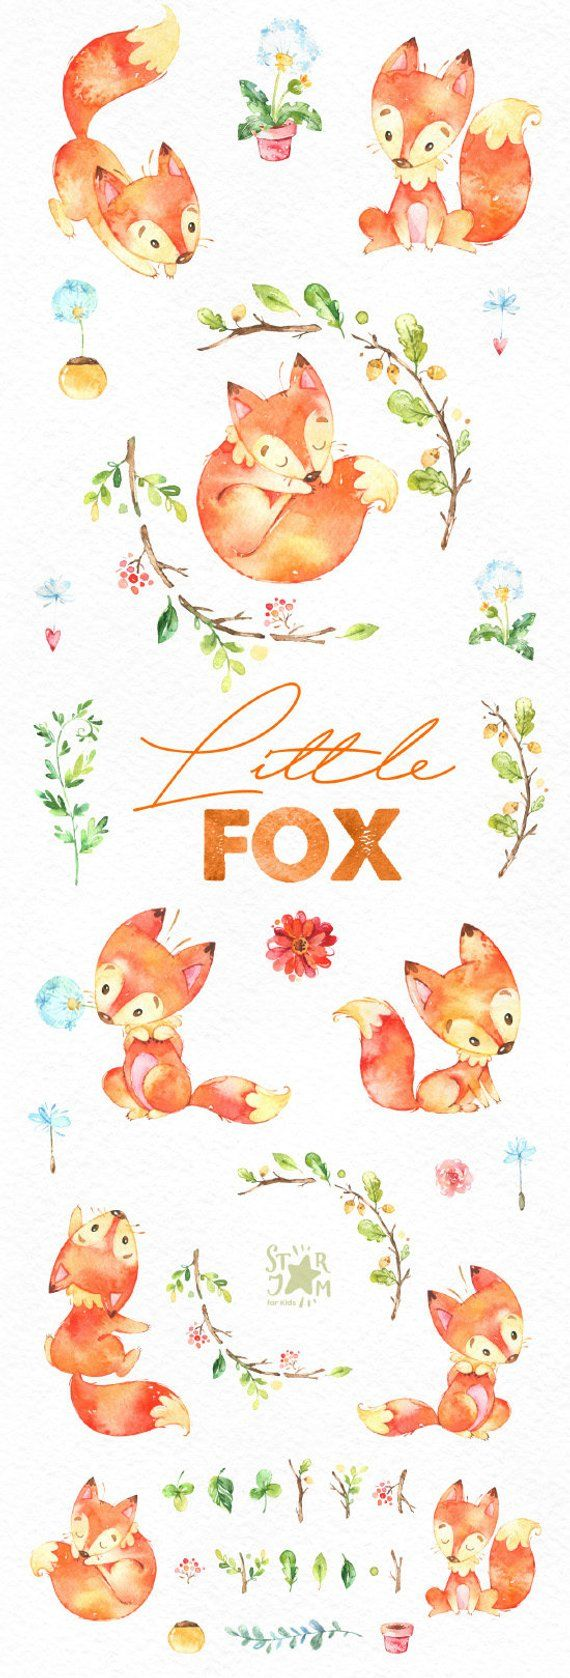 Little fox. Cute animal clipart, watercolor, forest, forest, wreath, flowers, greeting, invite, babyshower, children, beautiful, red, planner, fxbn